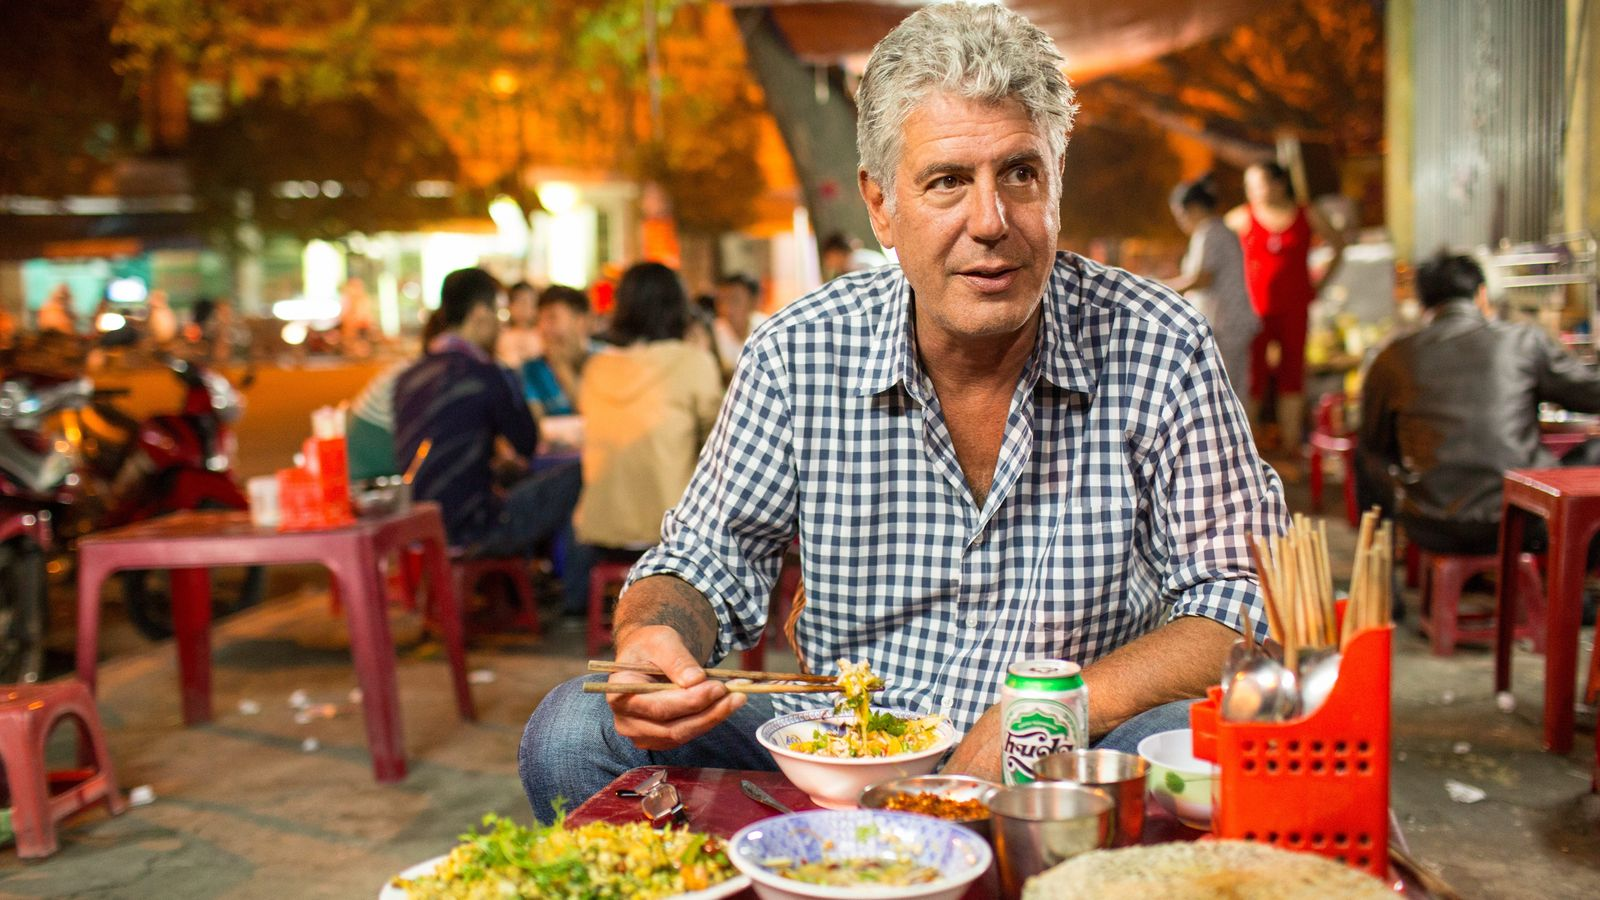 Here's What You Need to Know About Anthony Bourdain's NYC Food Market